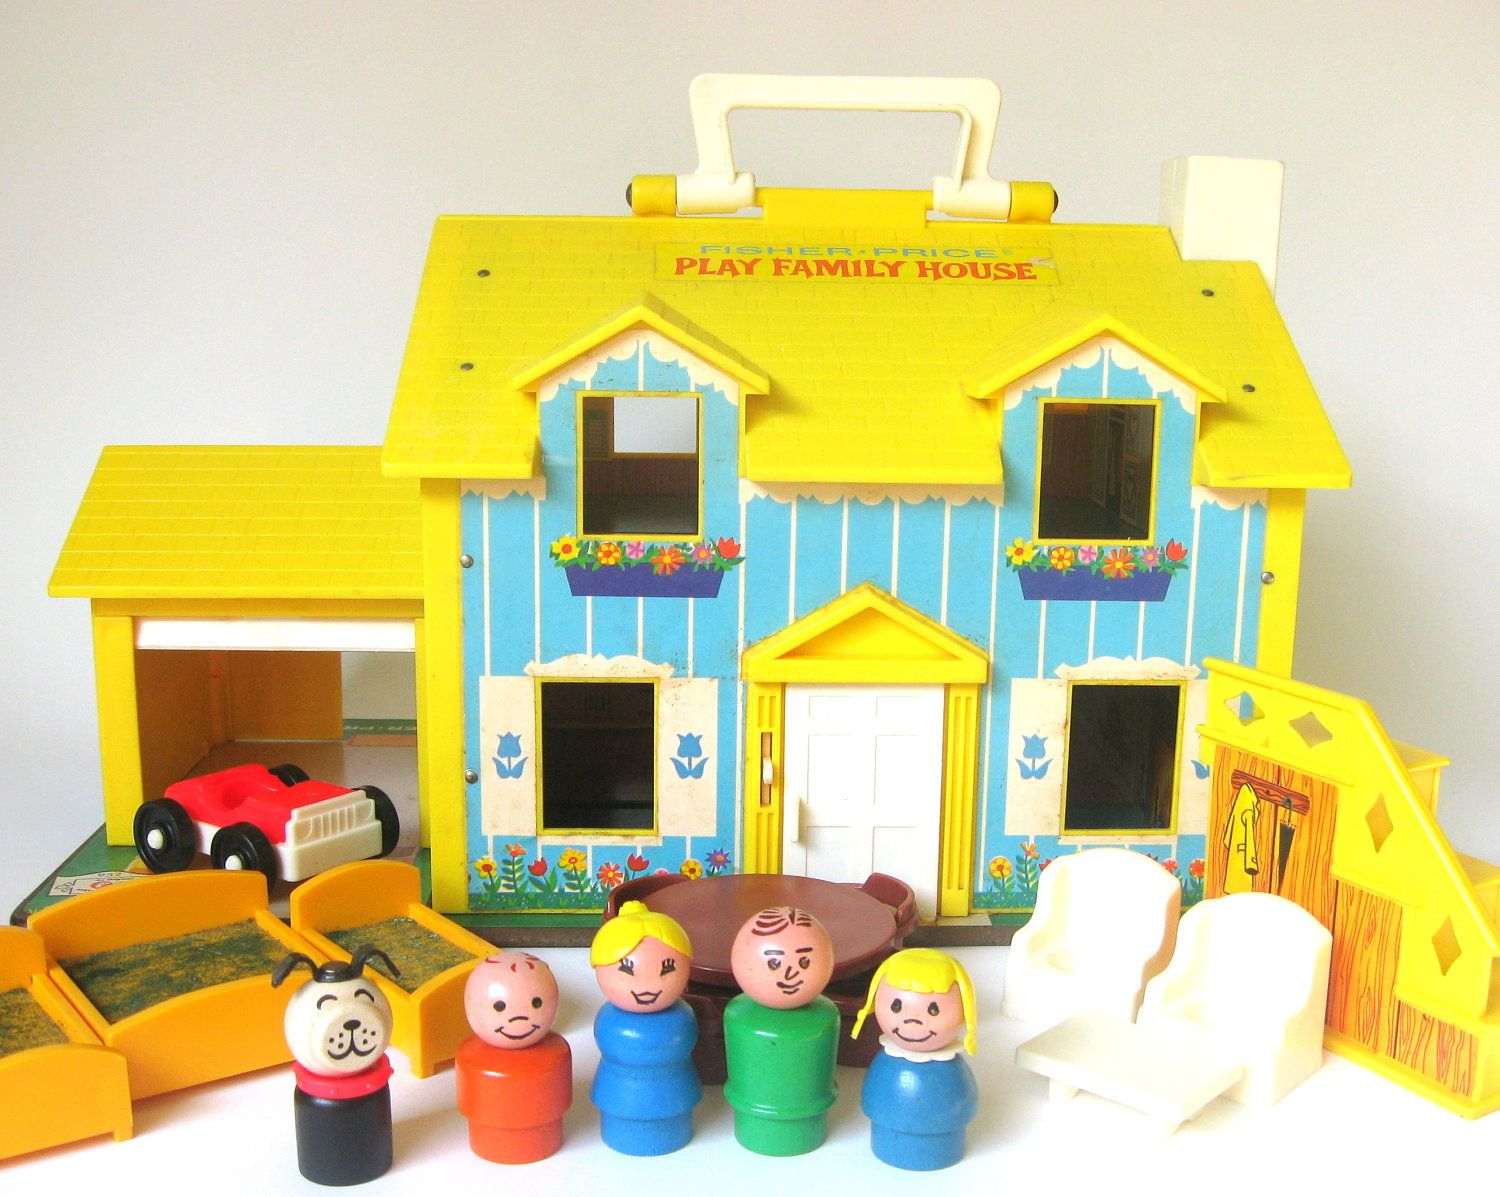 Toys For Grandparents House : Vintage fisher price family play house have these at my